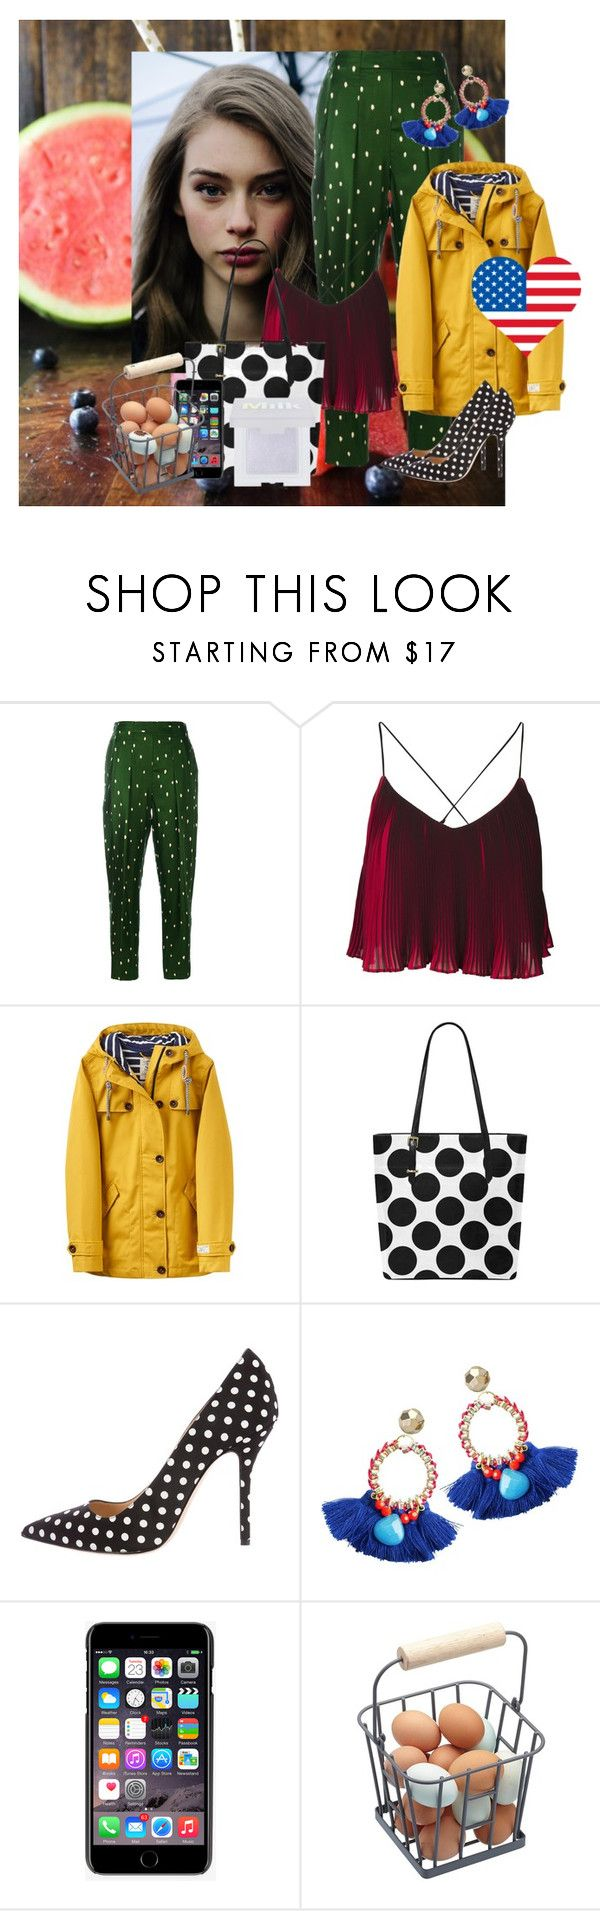 """""""loving USA dots"""" by betsabe13 ❤ liked on Polyvore featuring 3.1 Phillip Lim, Joules, Oscar de la Renta and Dolce&Gabbana"""